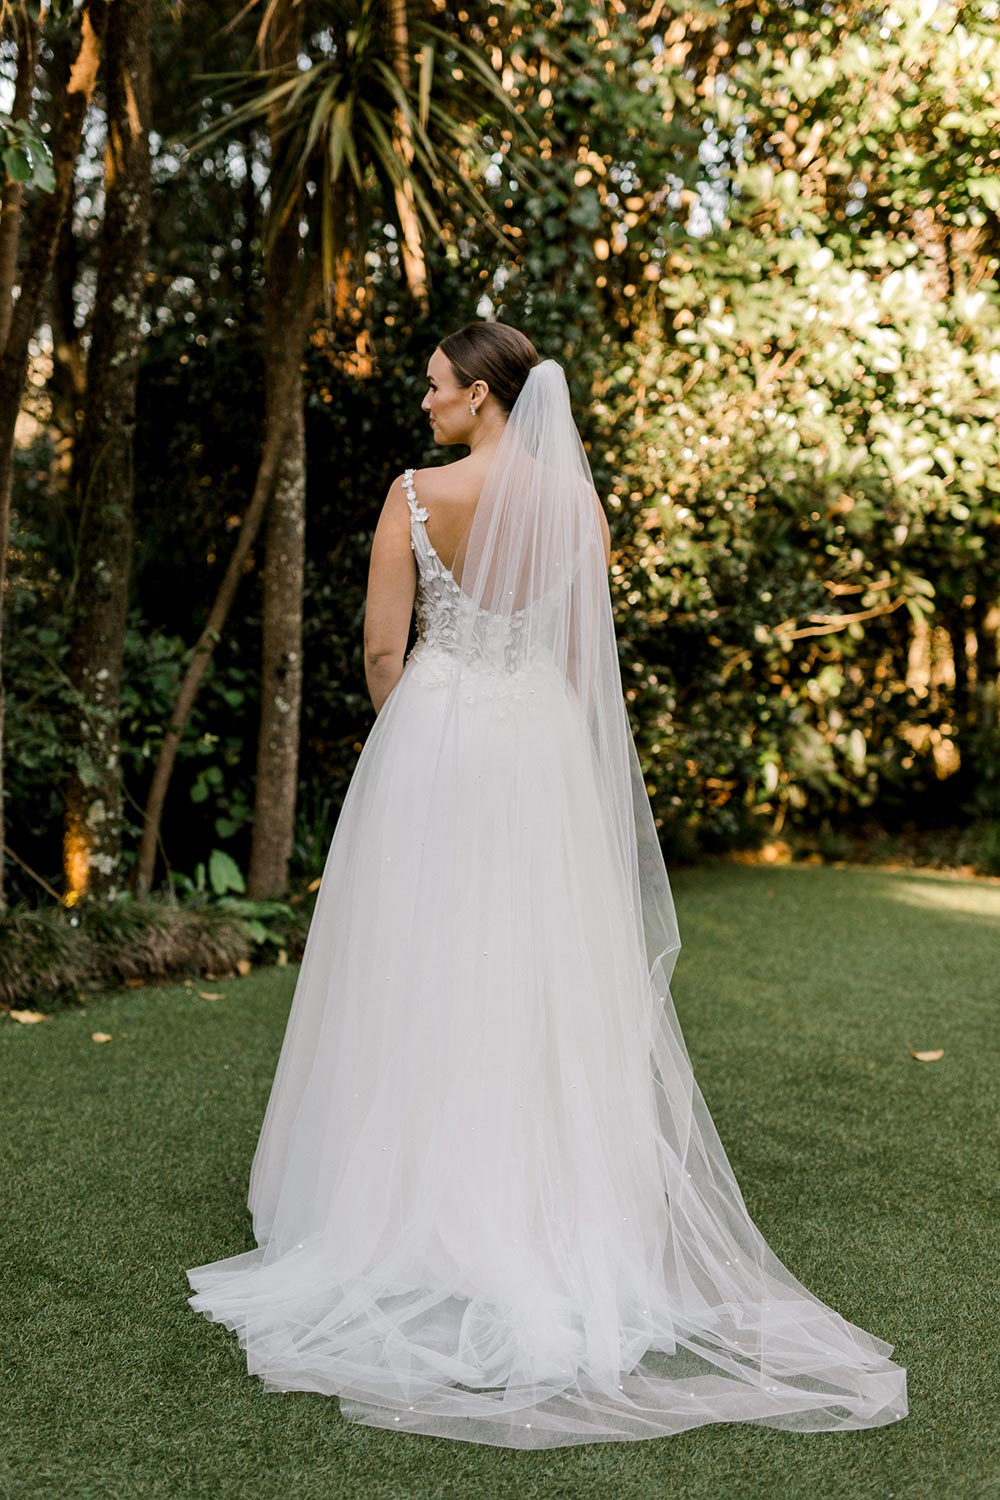 Serena Wedding Gown from Vinka Design - Classic & feminine wedding gown. Deep V-neckline semi-sheer structured bodice appliqued with flowers & leaves. Dreamy layered soft tulle skirt with side-split. Full length detail of back of dress. Photograph in landscaped gardens.